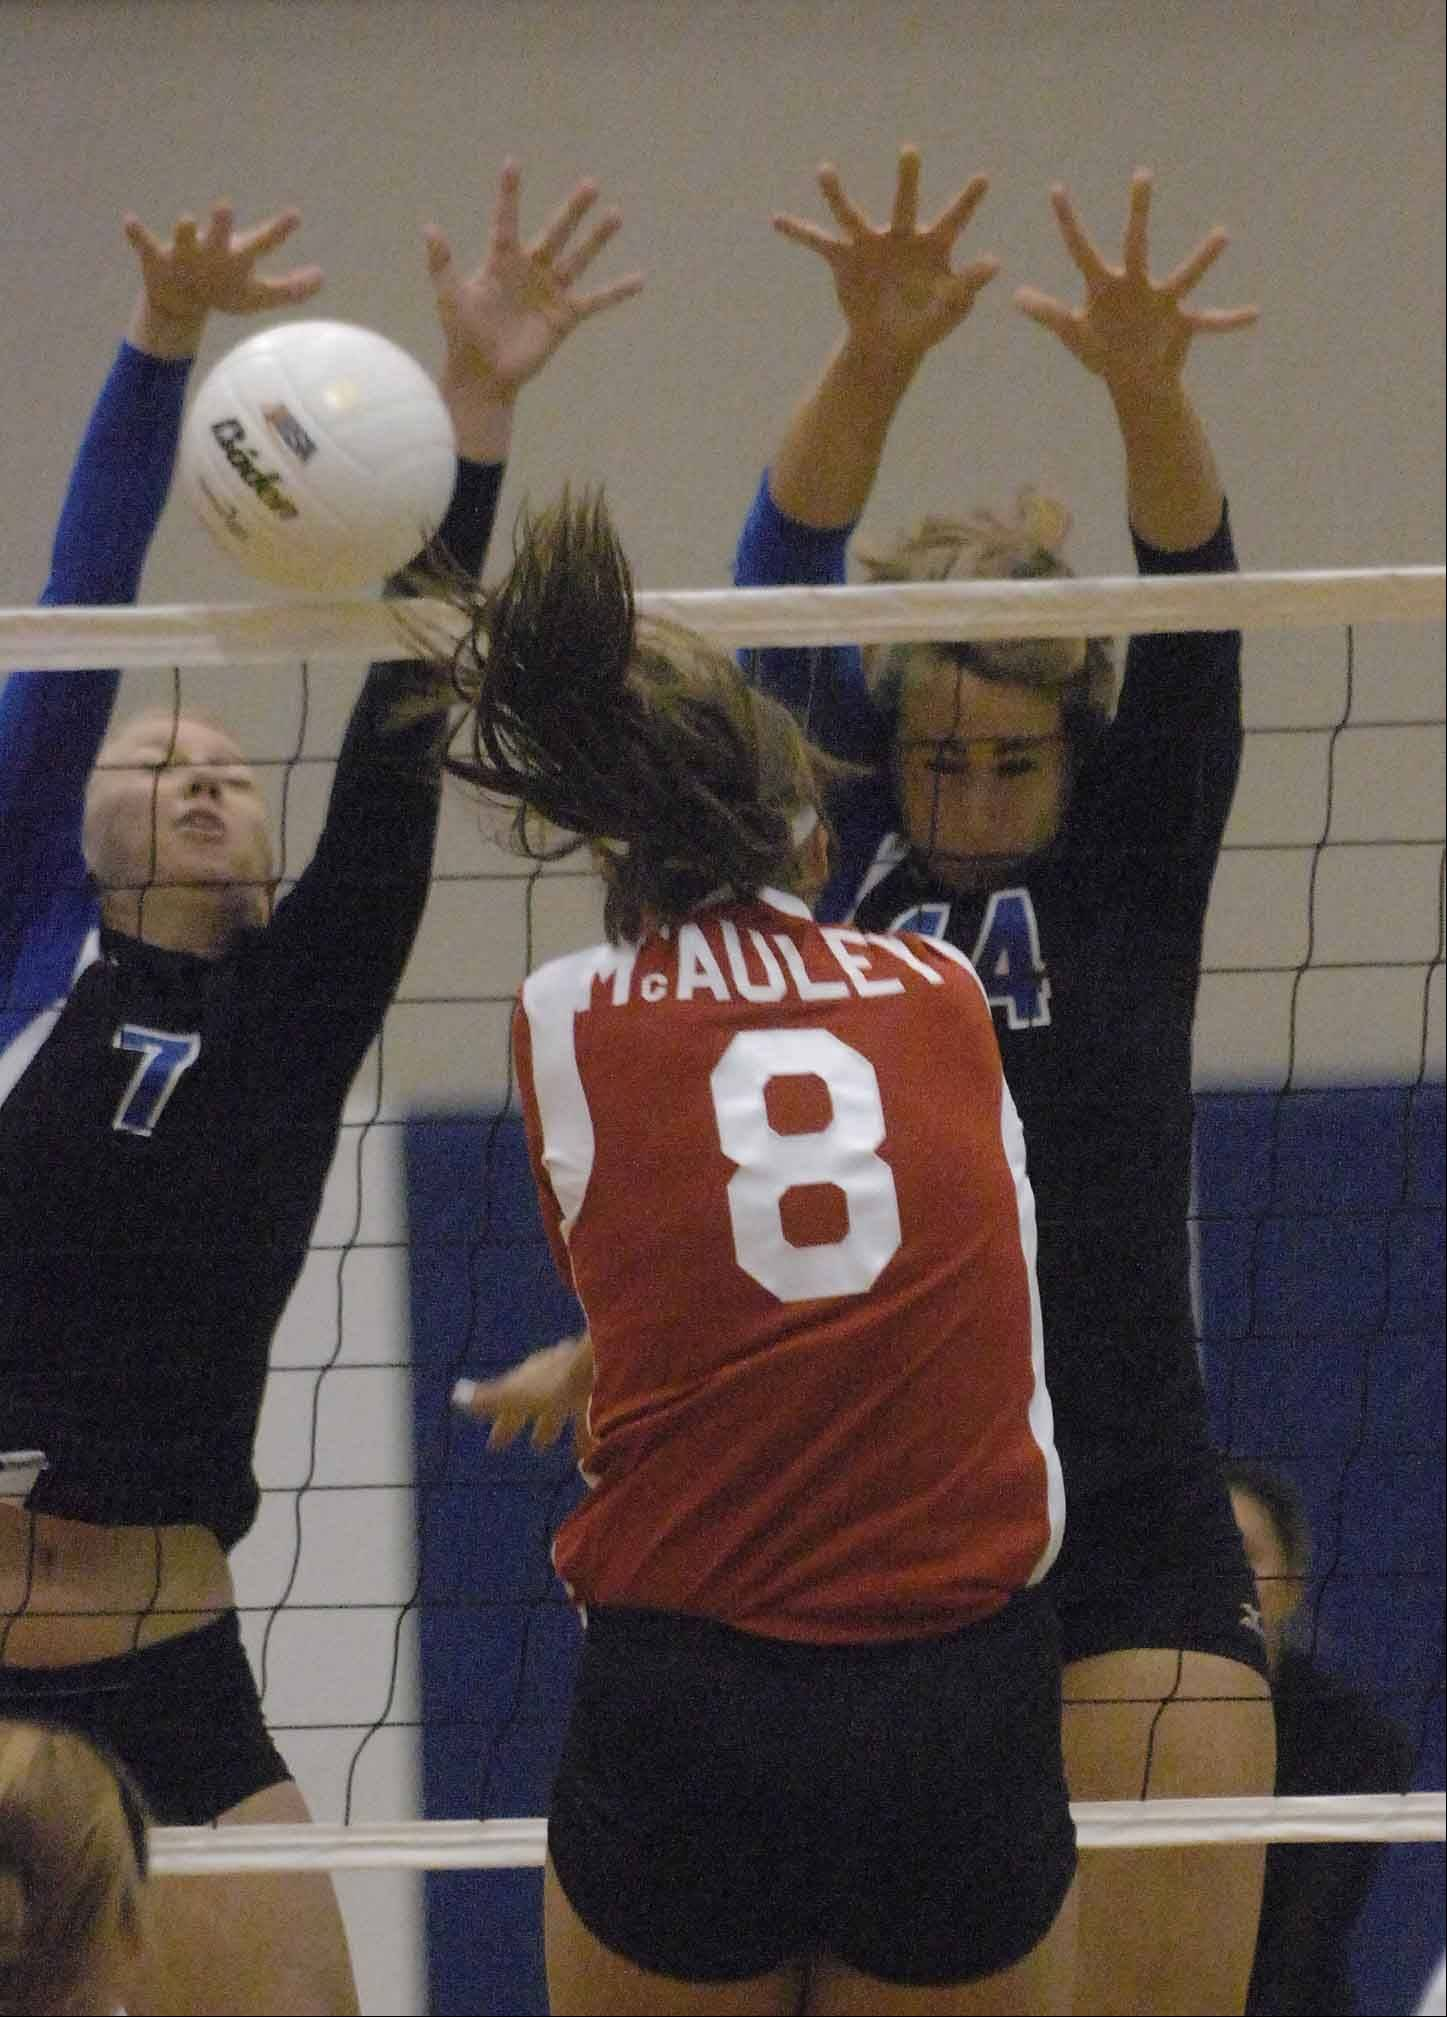 PAUL MICHNA/Pmichna@dailyherald.com Hayley Gable,left, and Daiva Wisebothof St. Francis block a shot by Ryann Arundel of Mother McAuley. this took place during the Mother McAuley at St. Francis girls volleyball game Thursday.